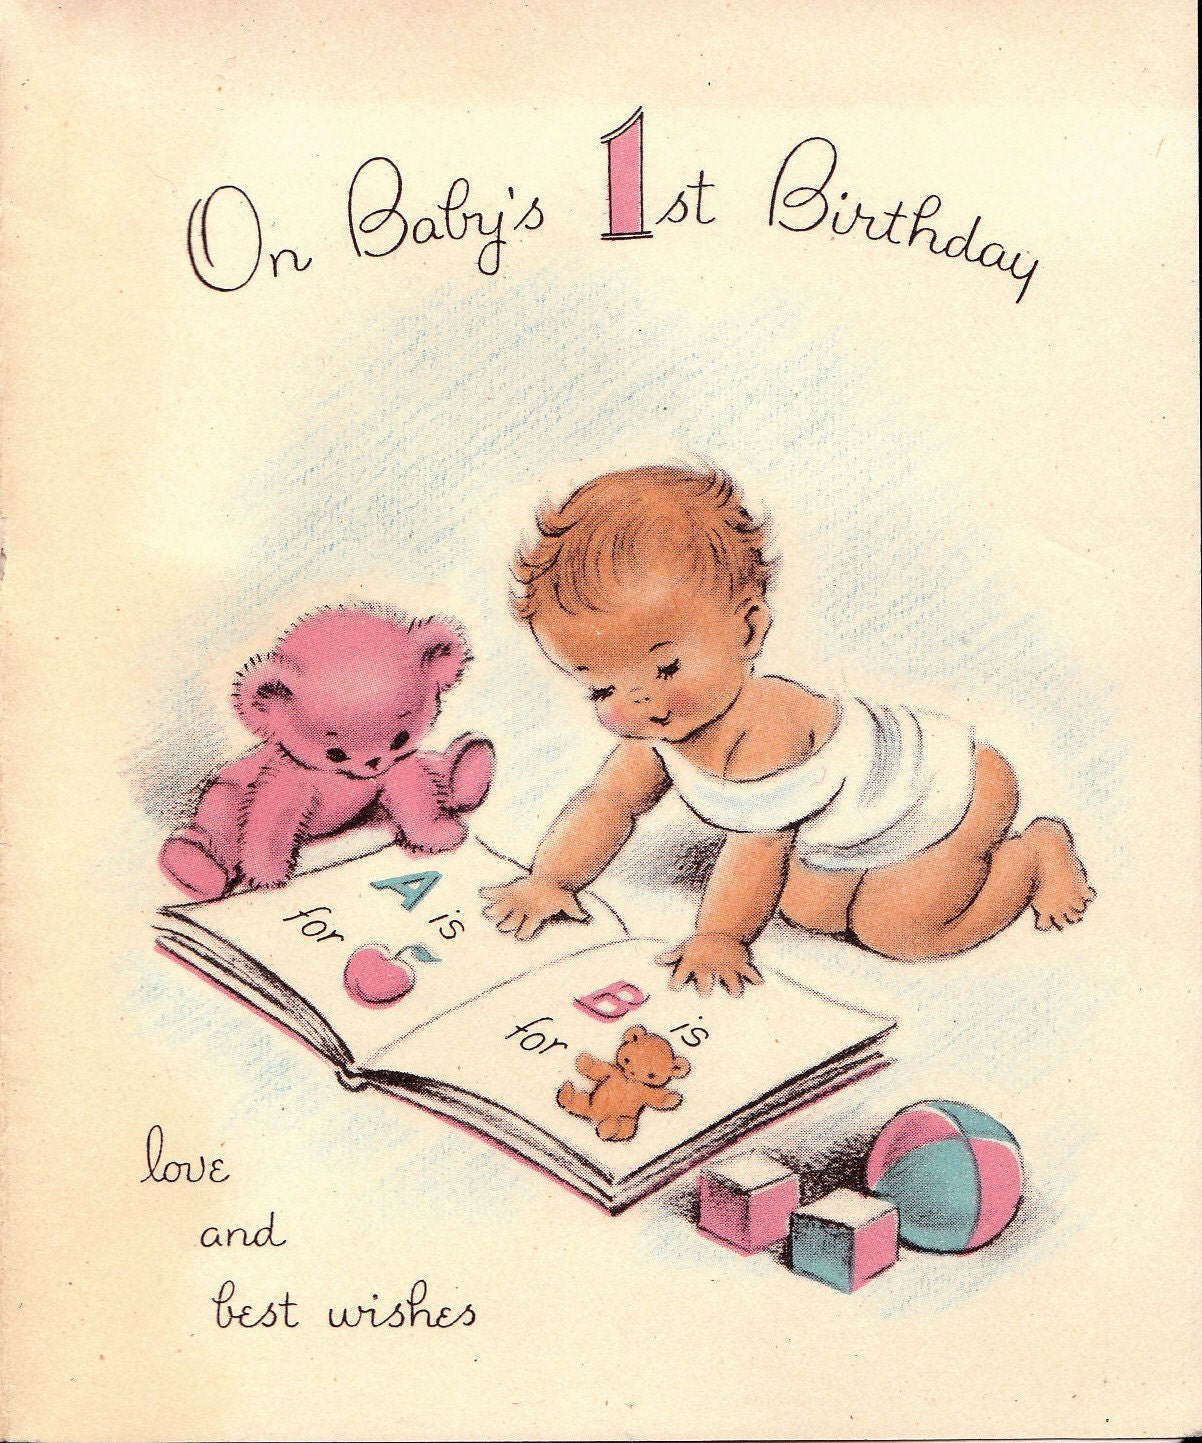 Images Of Vintage Girls First Birthday Card: Vintage 1950s On Babys 1st Birthday Greetings Card B29